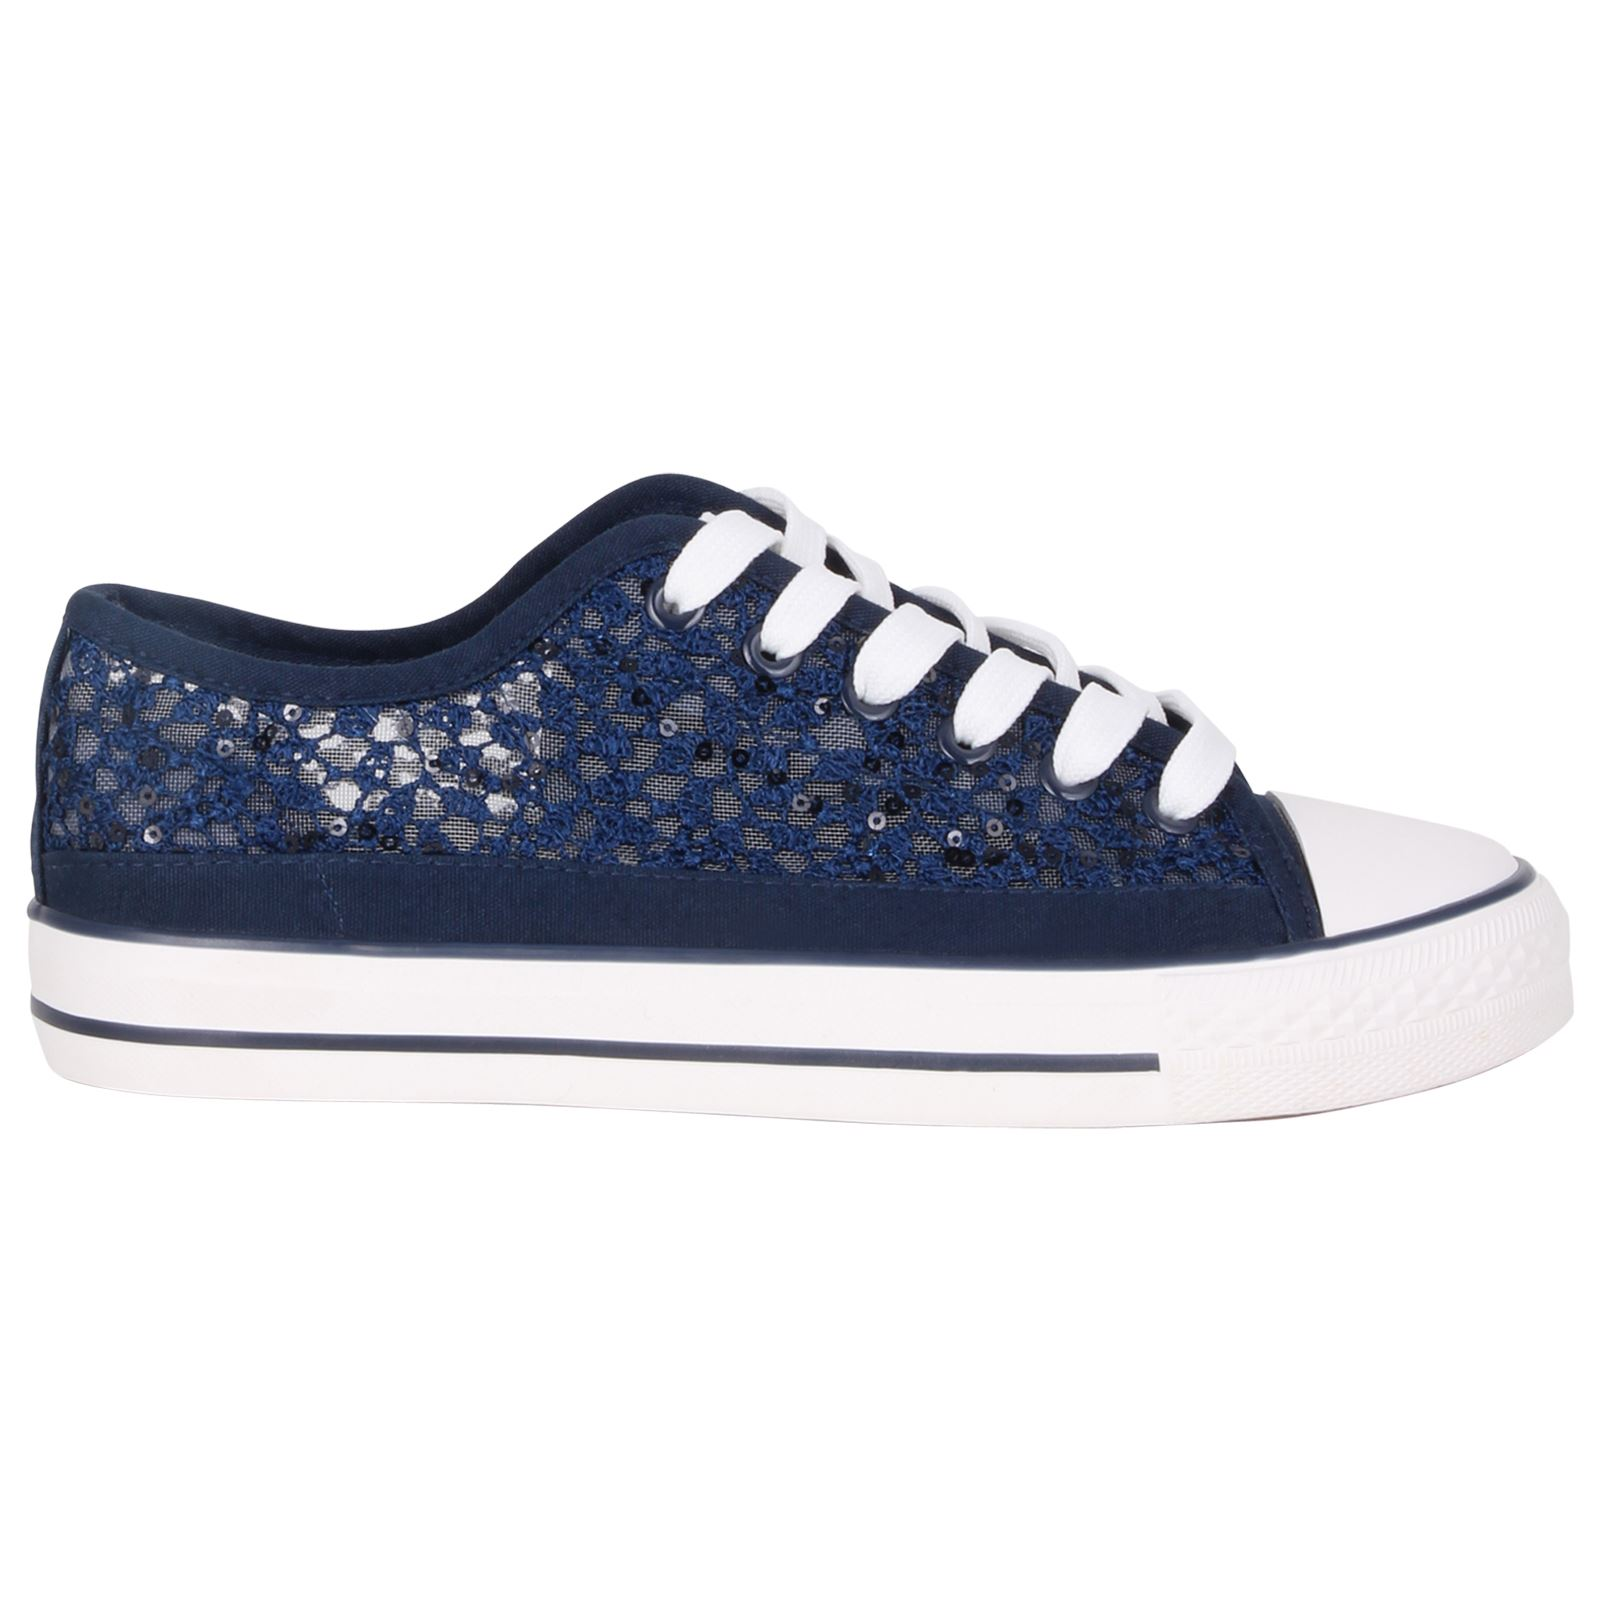 womens canvas low top lace up trainers flatform shoes